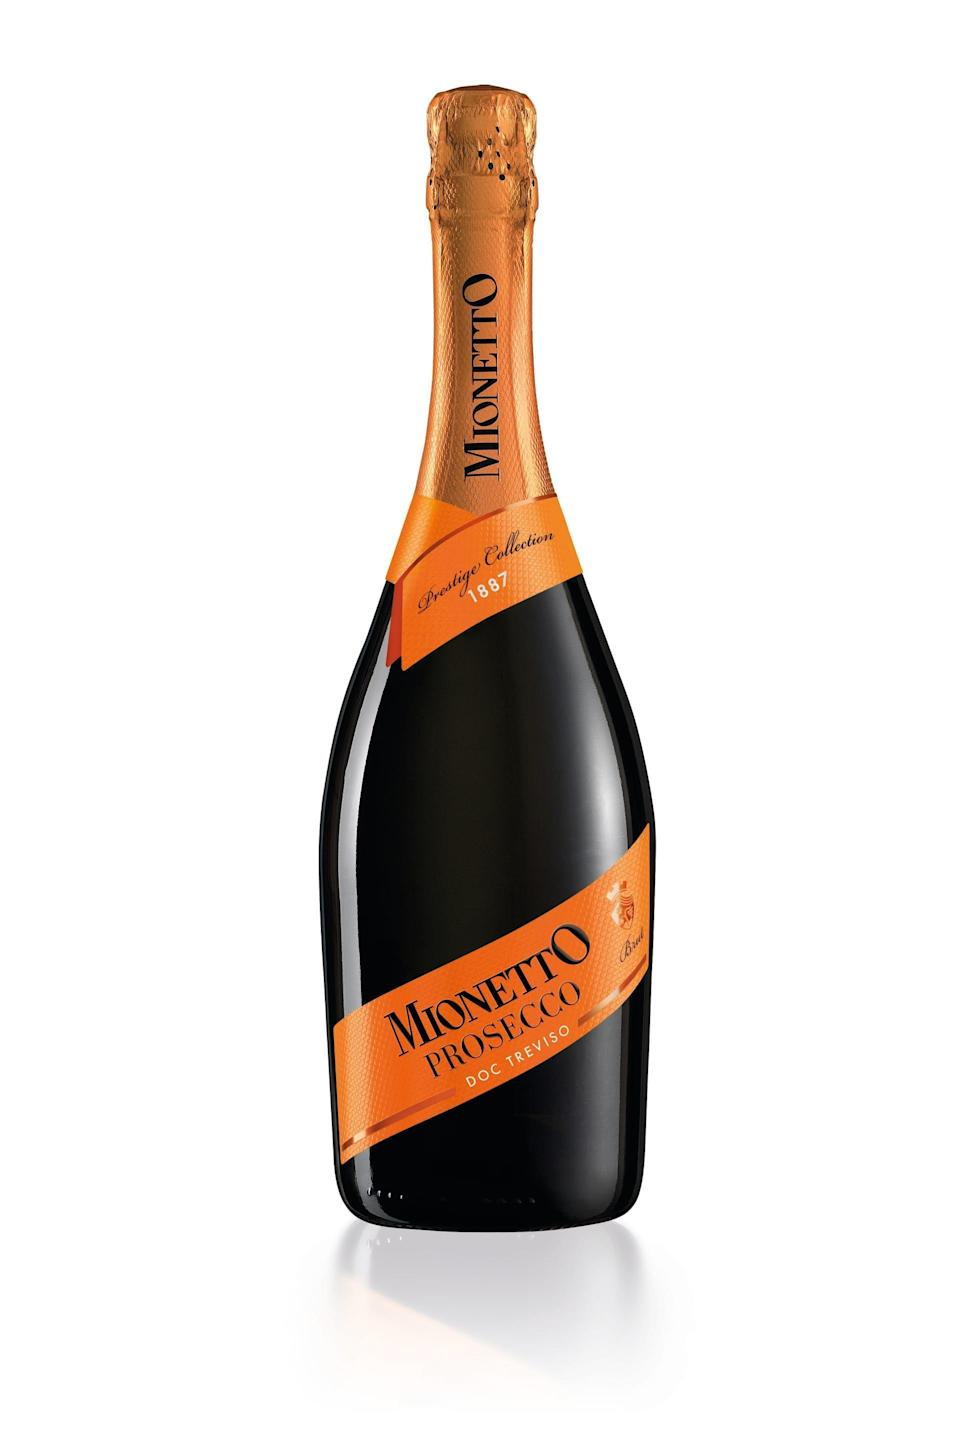 """<p><strong>Mionetto</strong></p><p>wine.com</p><p><strong>$13.99</strong></p><p><a href=""""https://go.redirectingat.com?id=74968X1596630&url=http%3A%2F%2Fwww.wine.com%2Fv6%2FMionetto-Prosecco-Brut%2Fwine%2F114238%2FDetail.aspx&sref=https%3A%2F%2Fwww.goodhousekeeping.com%2Ffood-products%2Fg33644539%2Fbest-cheap-wine-brands%2F"""" rel=""""nofollow noopener"""" target=""""_blank"""" data-ylk=""""slk:Shop Now"""" class=""""link rapid-noclick-resp"""">Shop Now</a></p><p>Another favorite of ours is Mionetto, which was founded in 1887. The brut is well-balanced, rich in fruity flavors, and perfectly dry. </p>"""